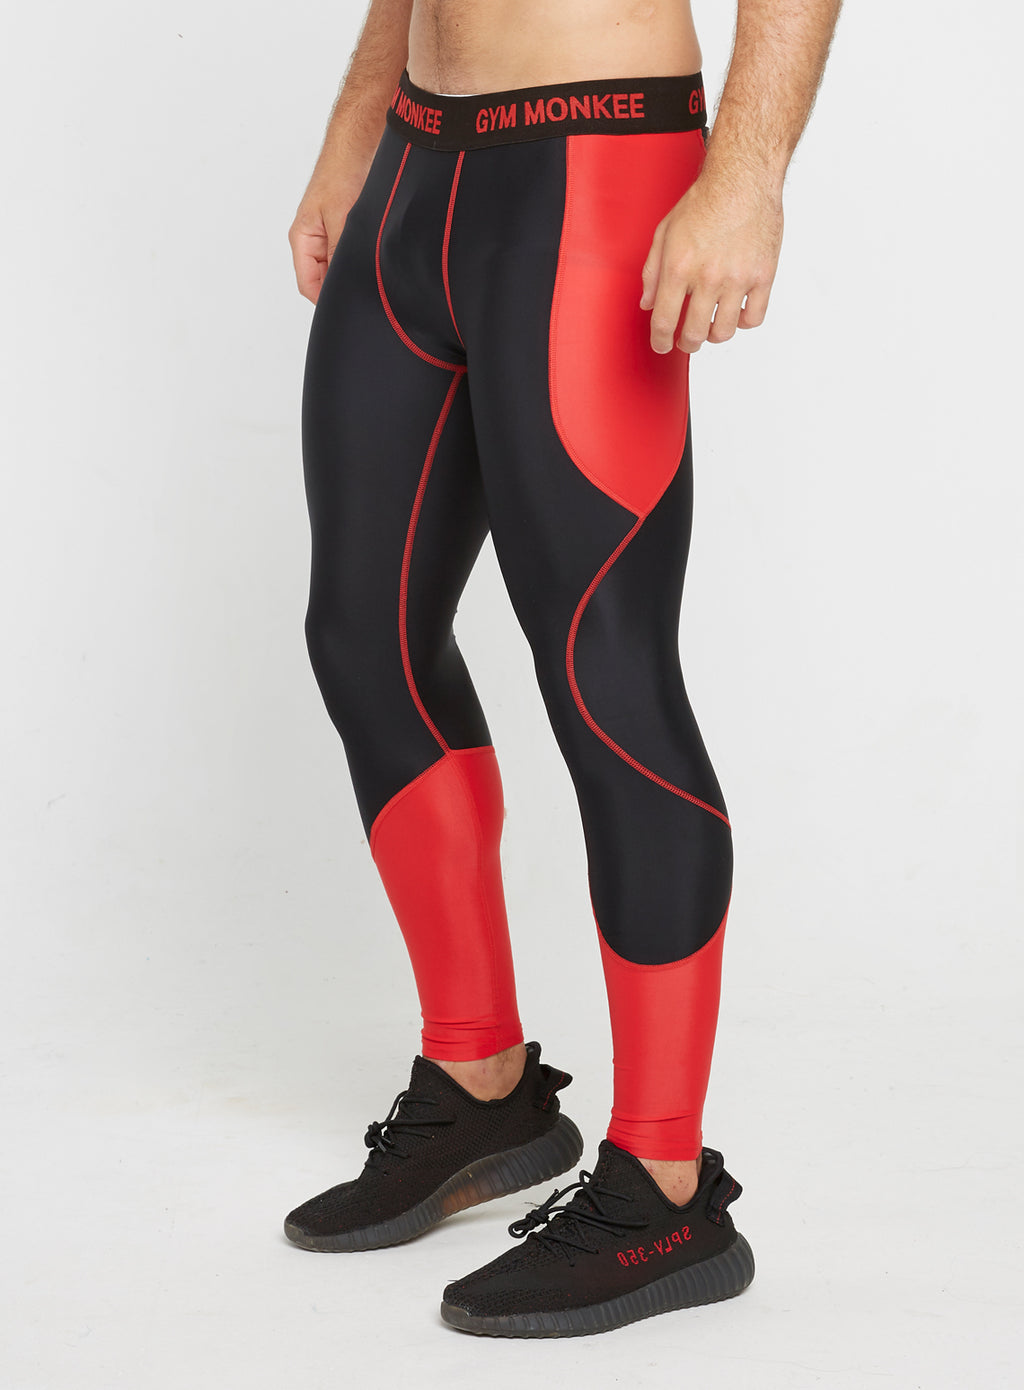 Gym Monkee - Black and Red Leggings LEFT